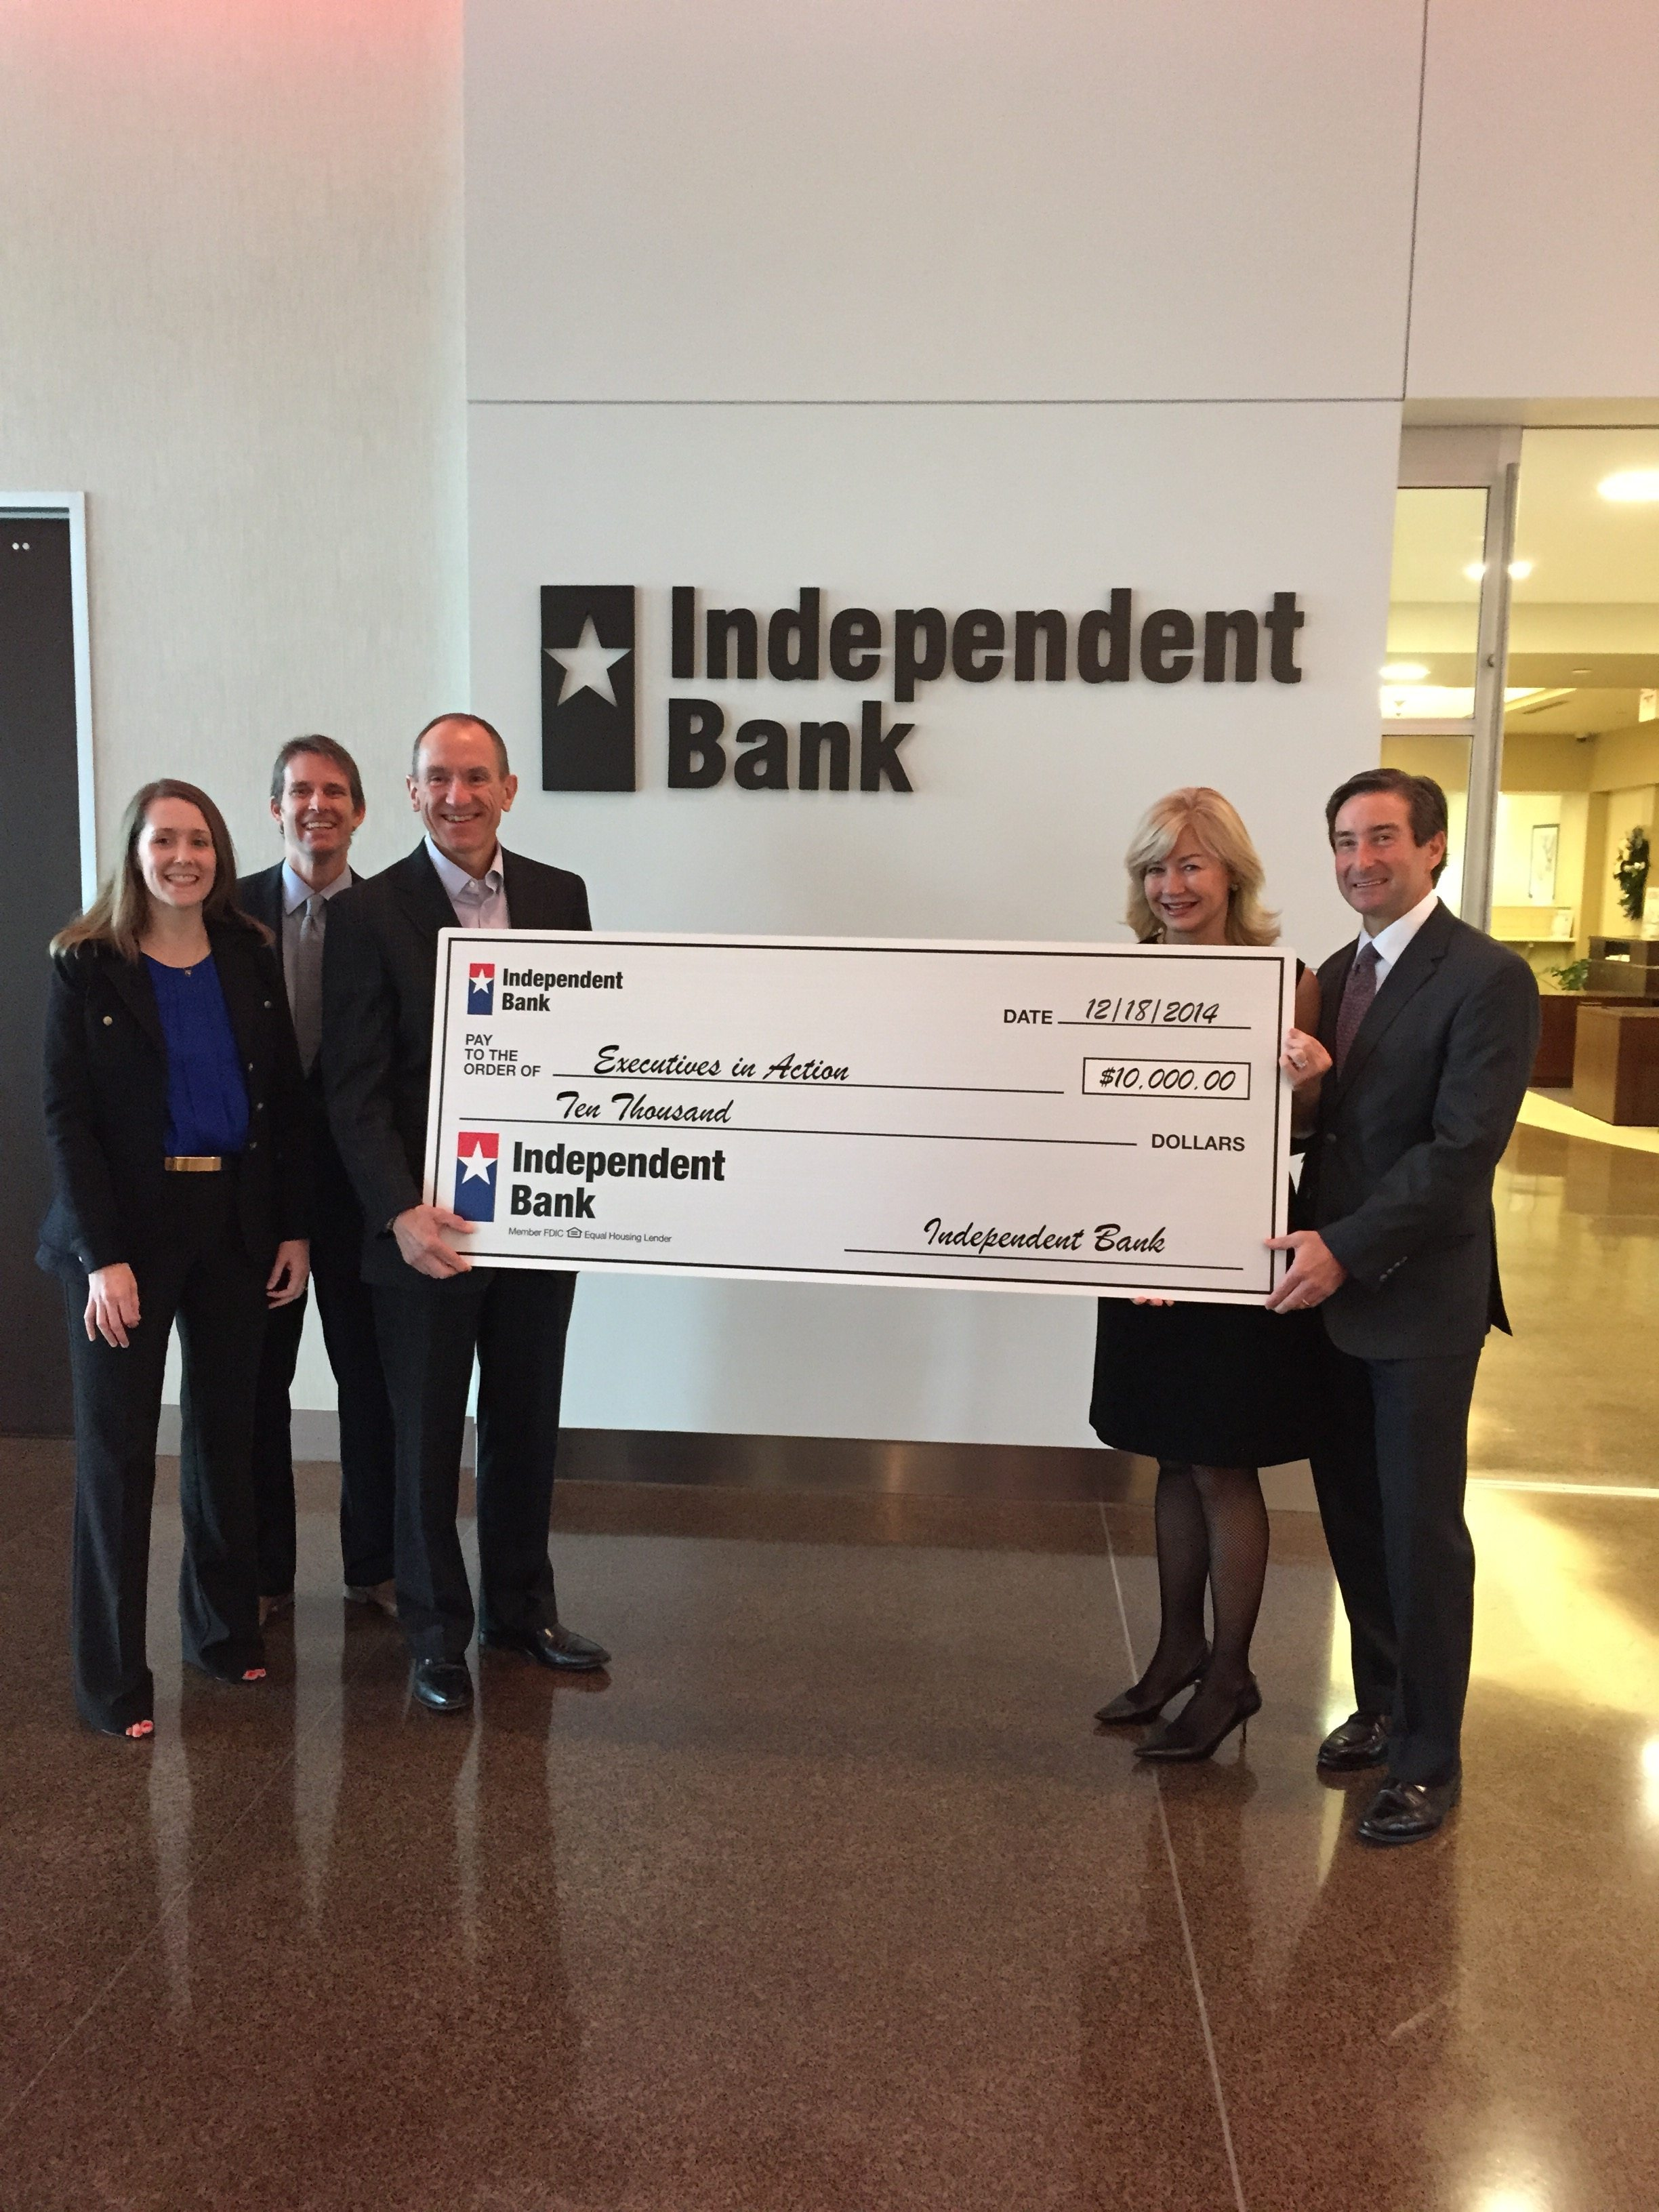 Independent Bank Picture